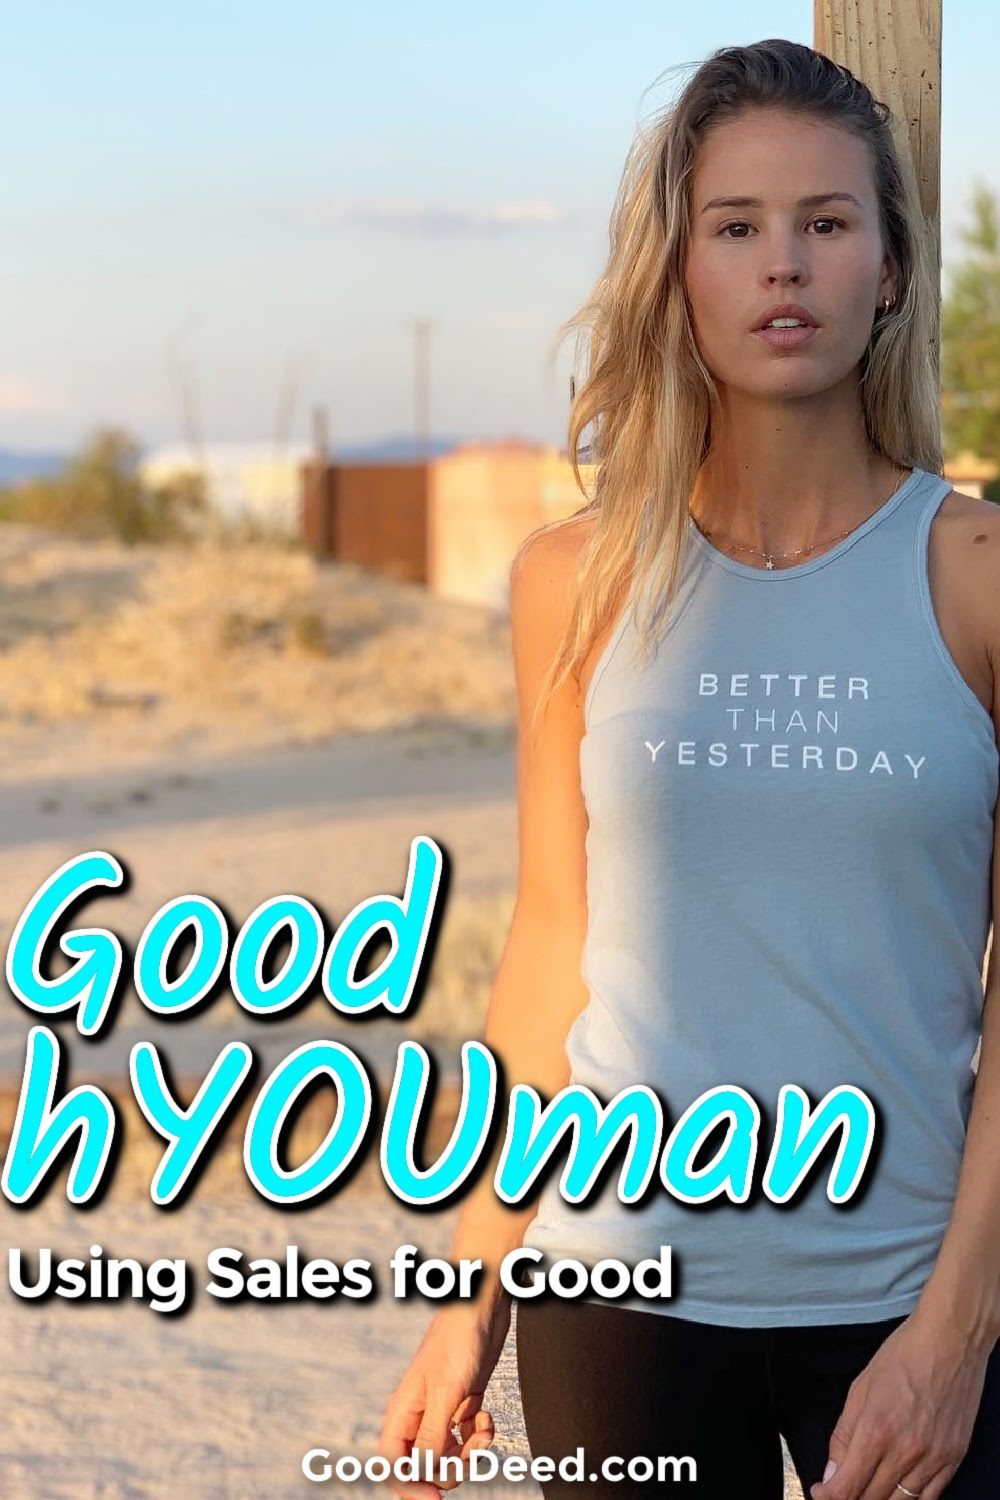 You can shop any Good hYOUman sale and know that you are not only getting high quality clothing, but you are also making a difference.